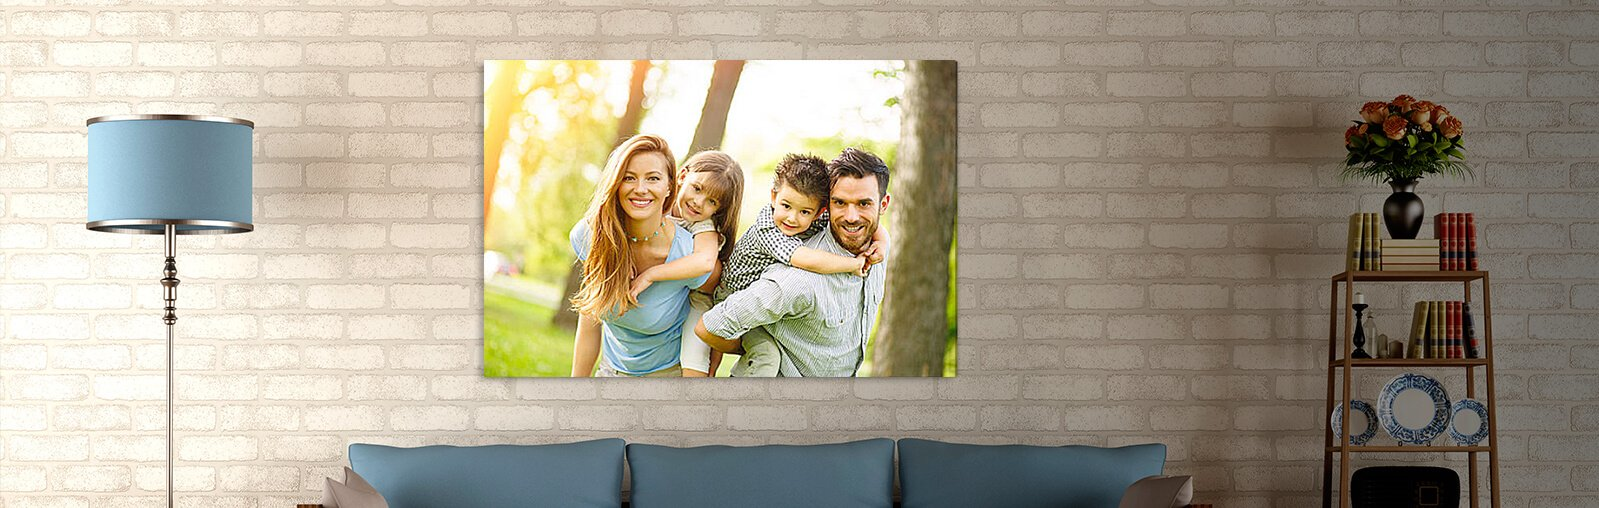 easy canvas prints reviews - 1599×508